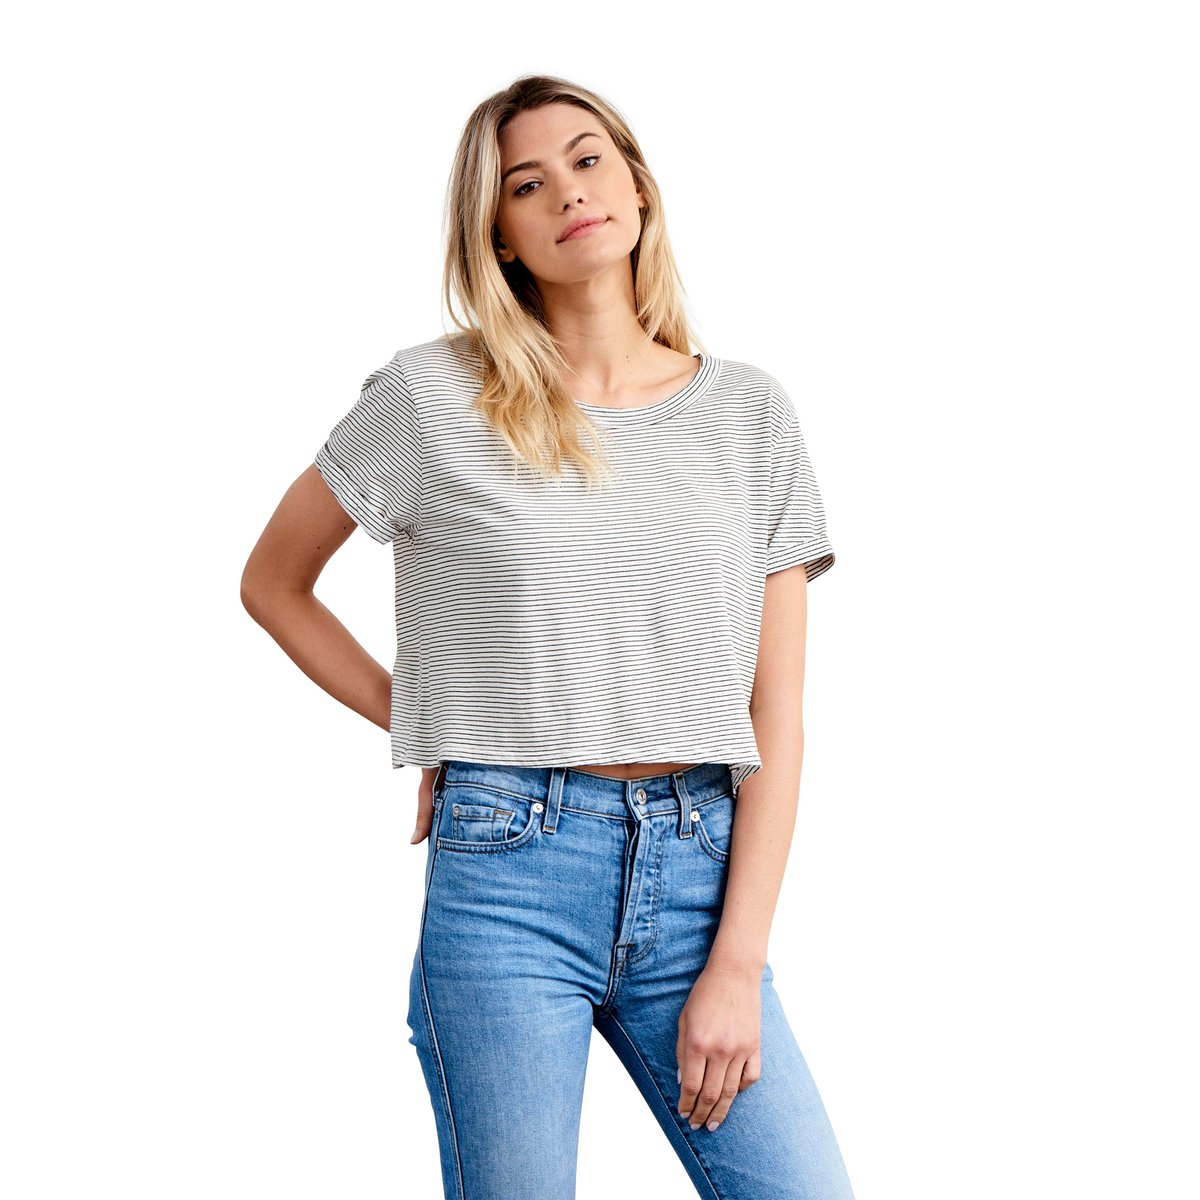 affordable organic clothing brands